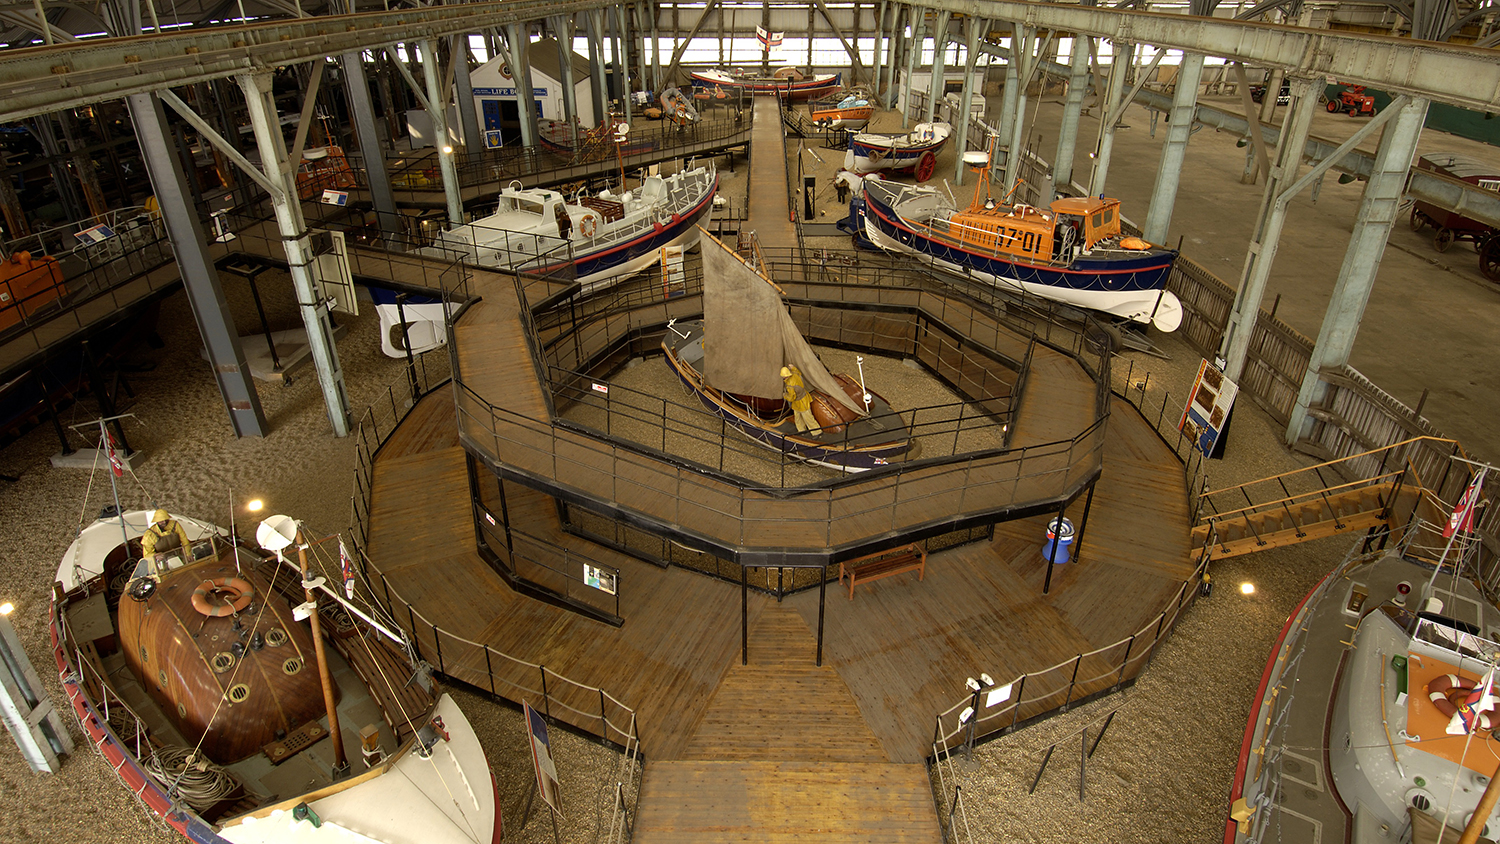 The RNLI Historic Lifeboat Collection at the Historic Dockyard in Chatham, Kent